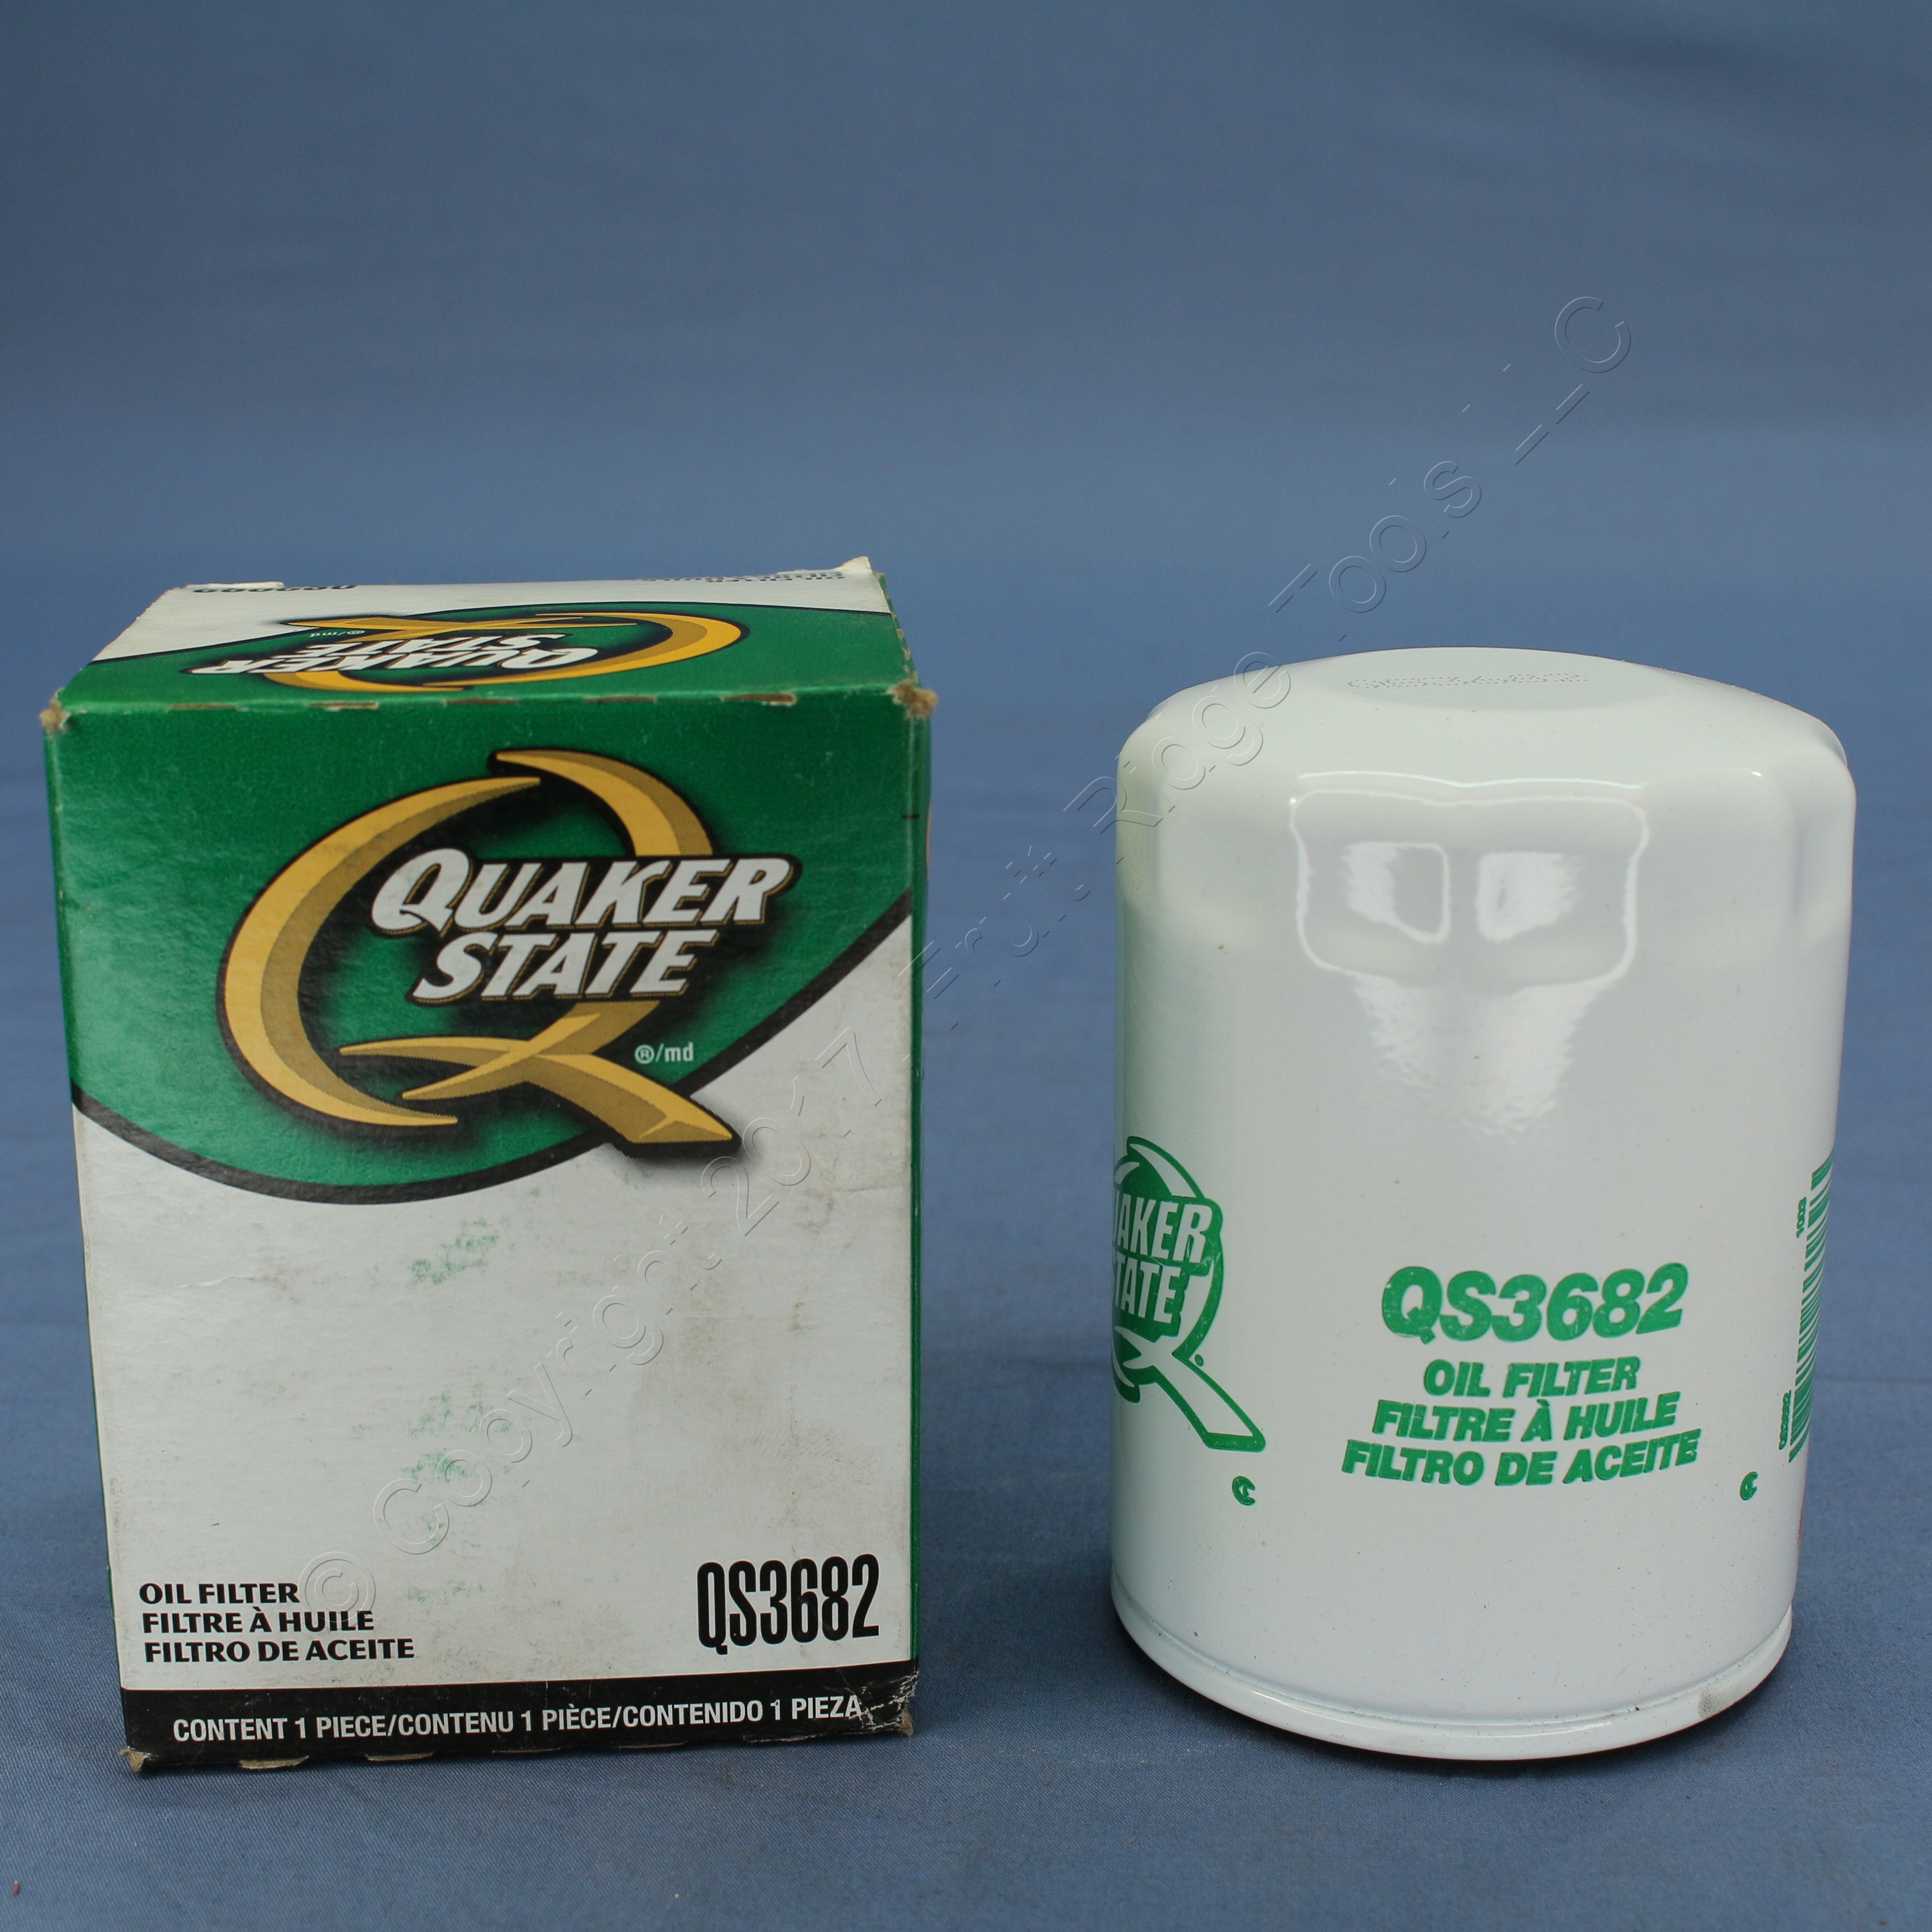 Automotive Parts Accessories Filters Quaker State Oil Filter Single Filter Listing Qs3682 Automotive Telesys Co In